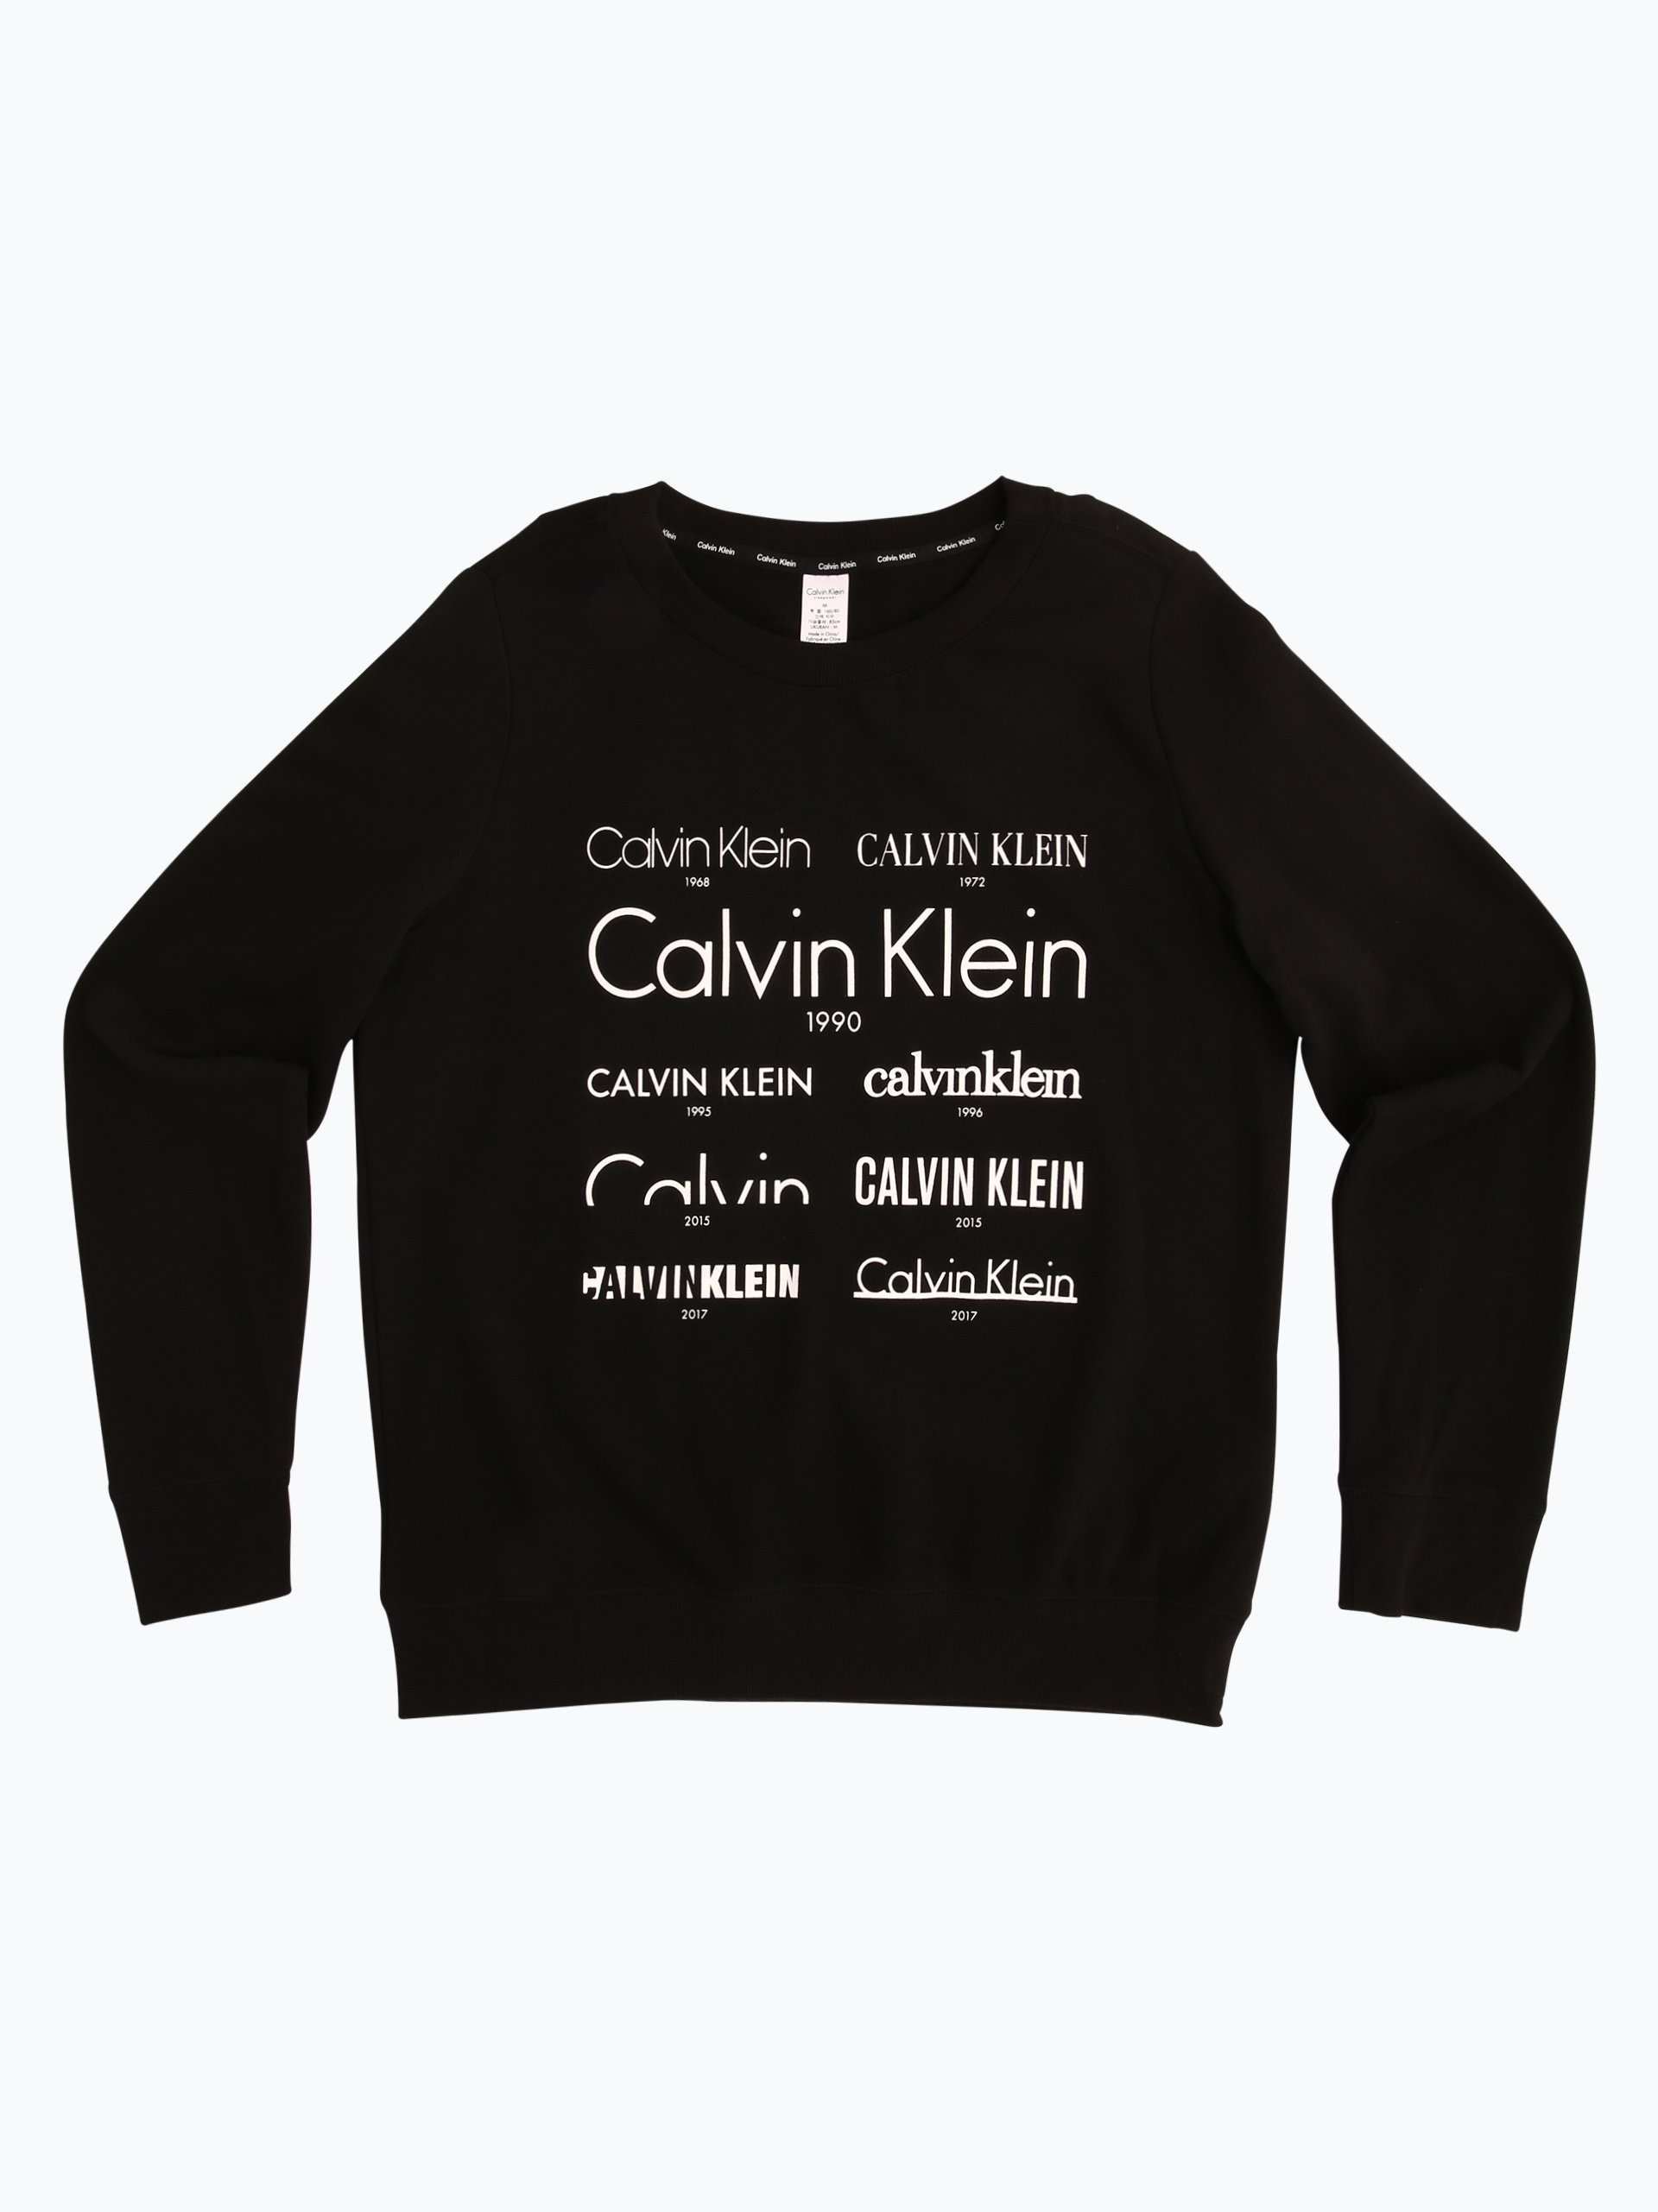 calvin klein damen pyjama shirt schwarz uni online kaufen. Black Bedroom Furniture Sets. Home Design Ideas